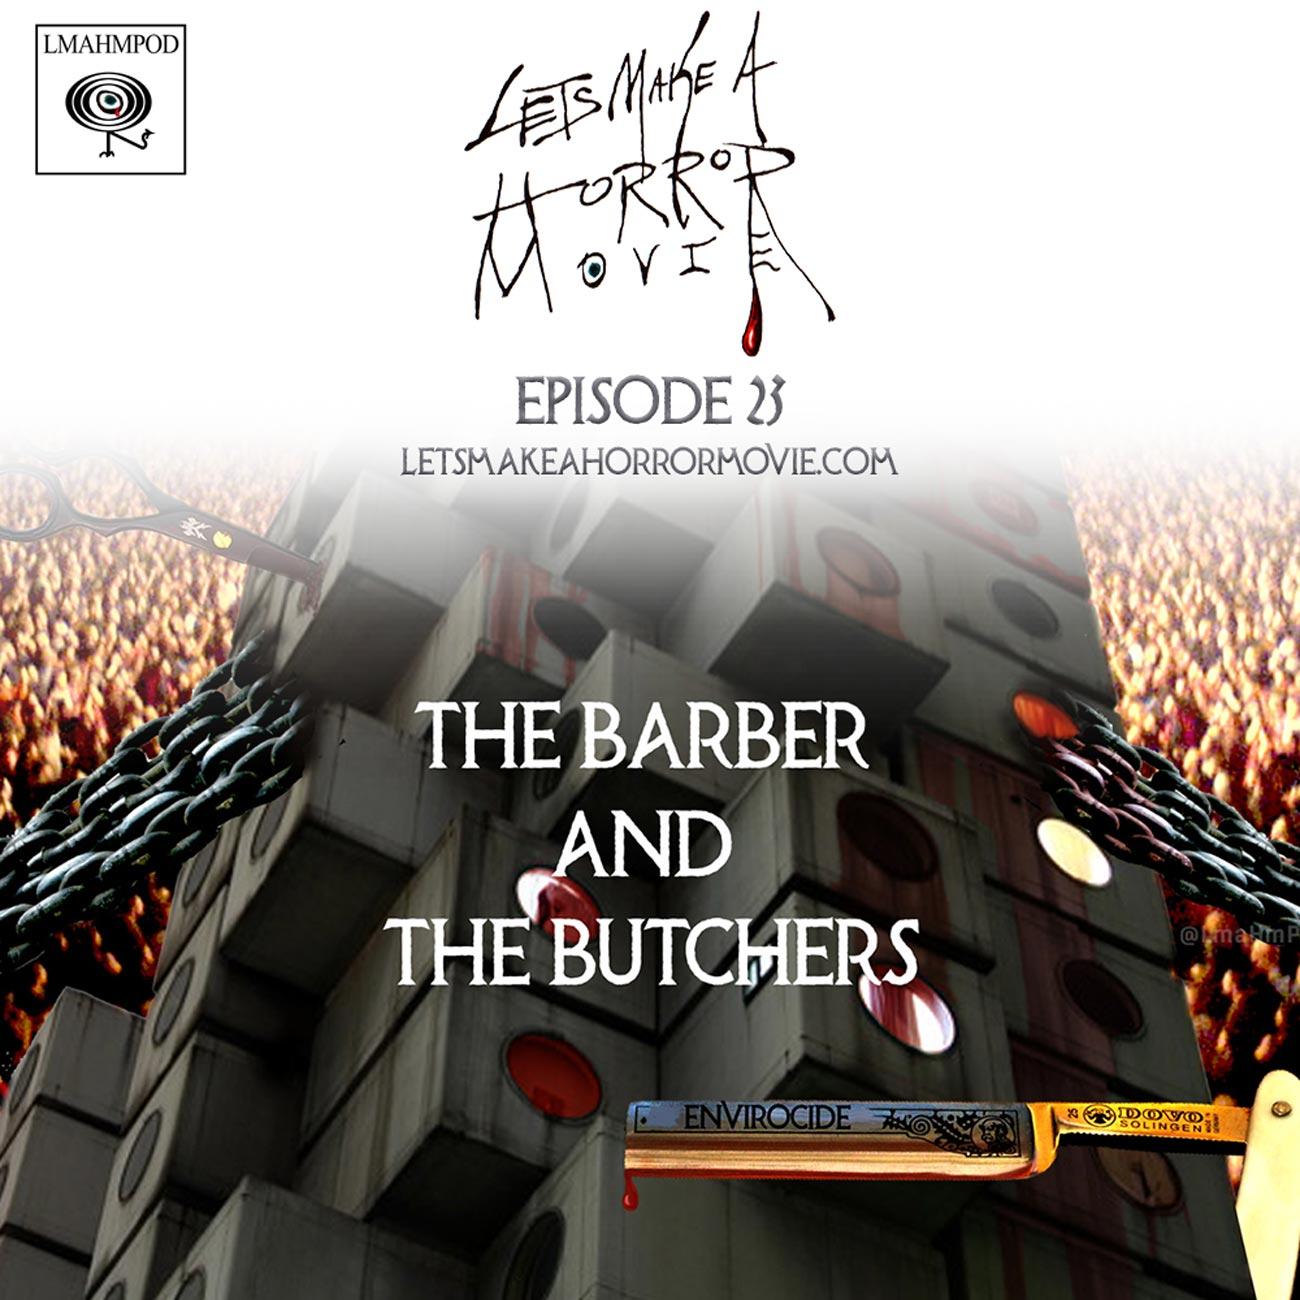 Episode 23: The Barber and The Butchers